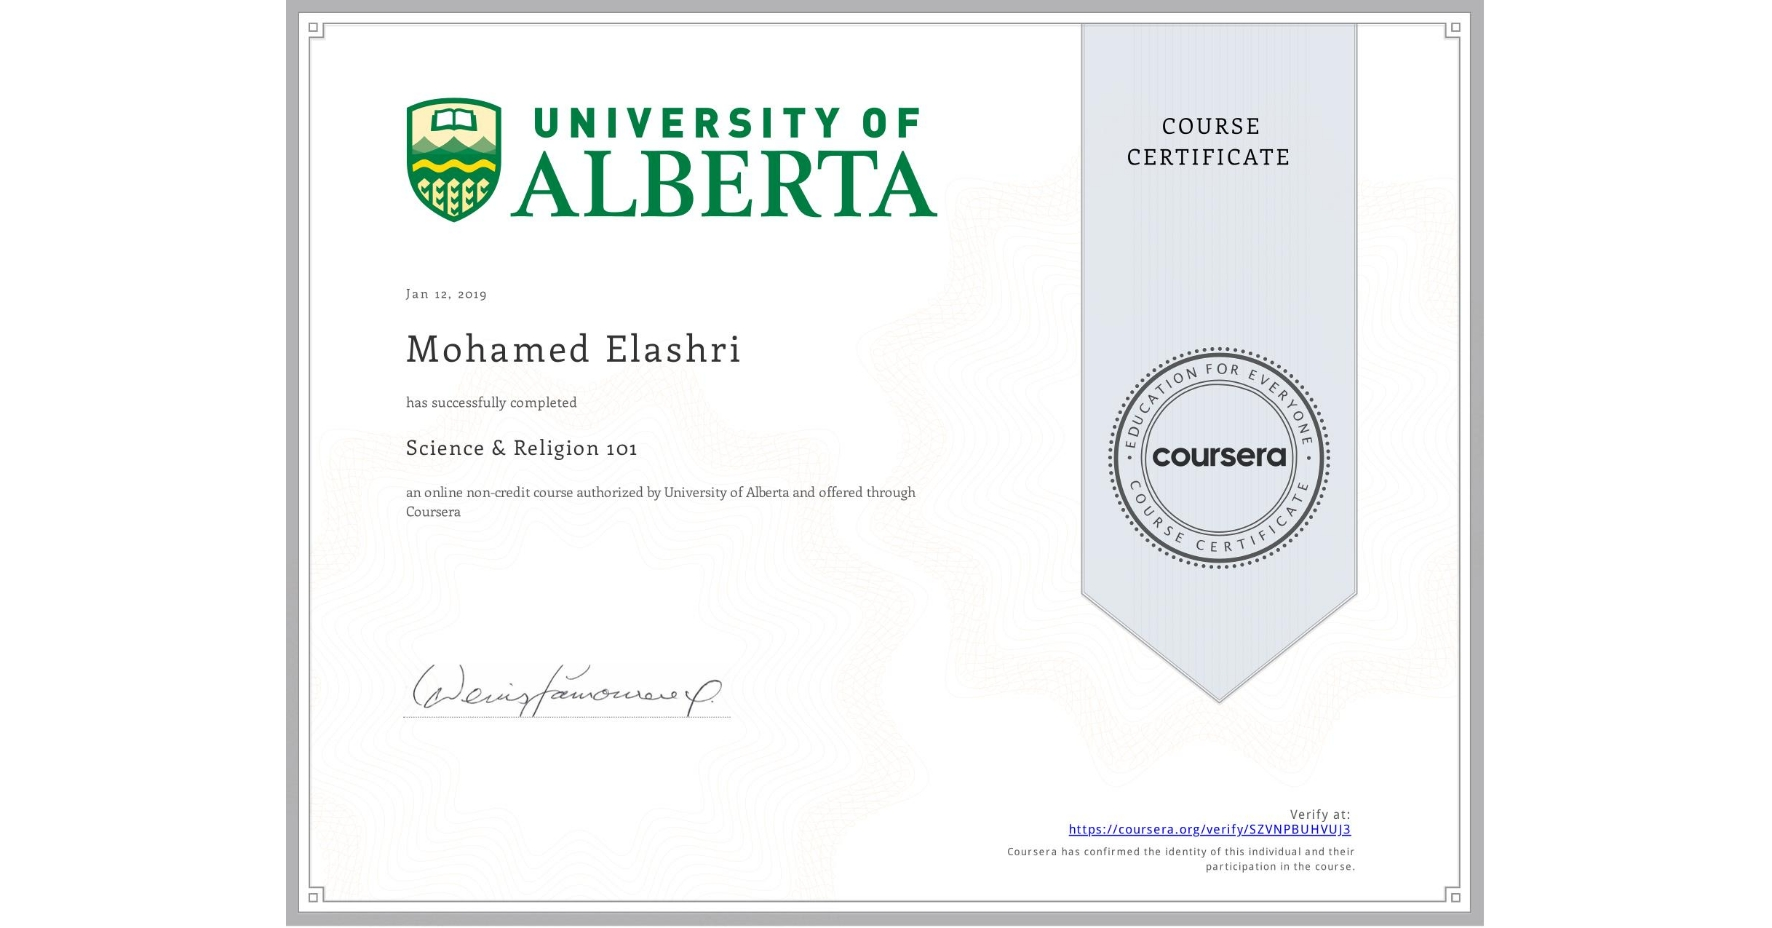 View certificate for Mohamed Elashri, Science & Religion 101, an online non-credit course authorized by University of Alberta and offered through Coursera